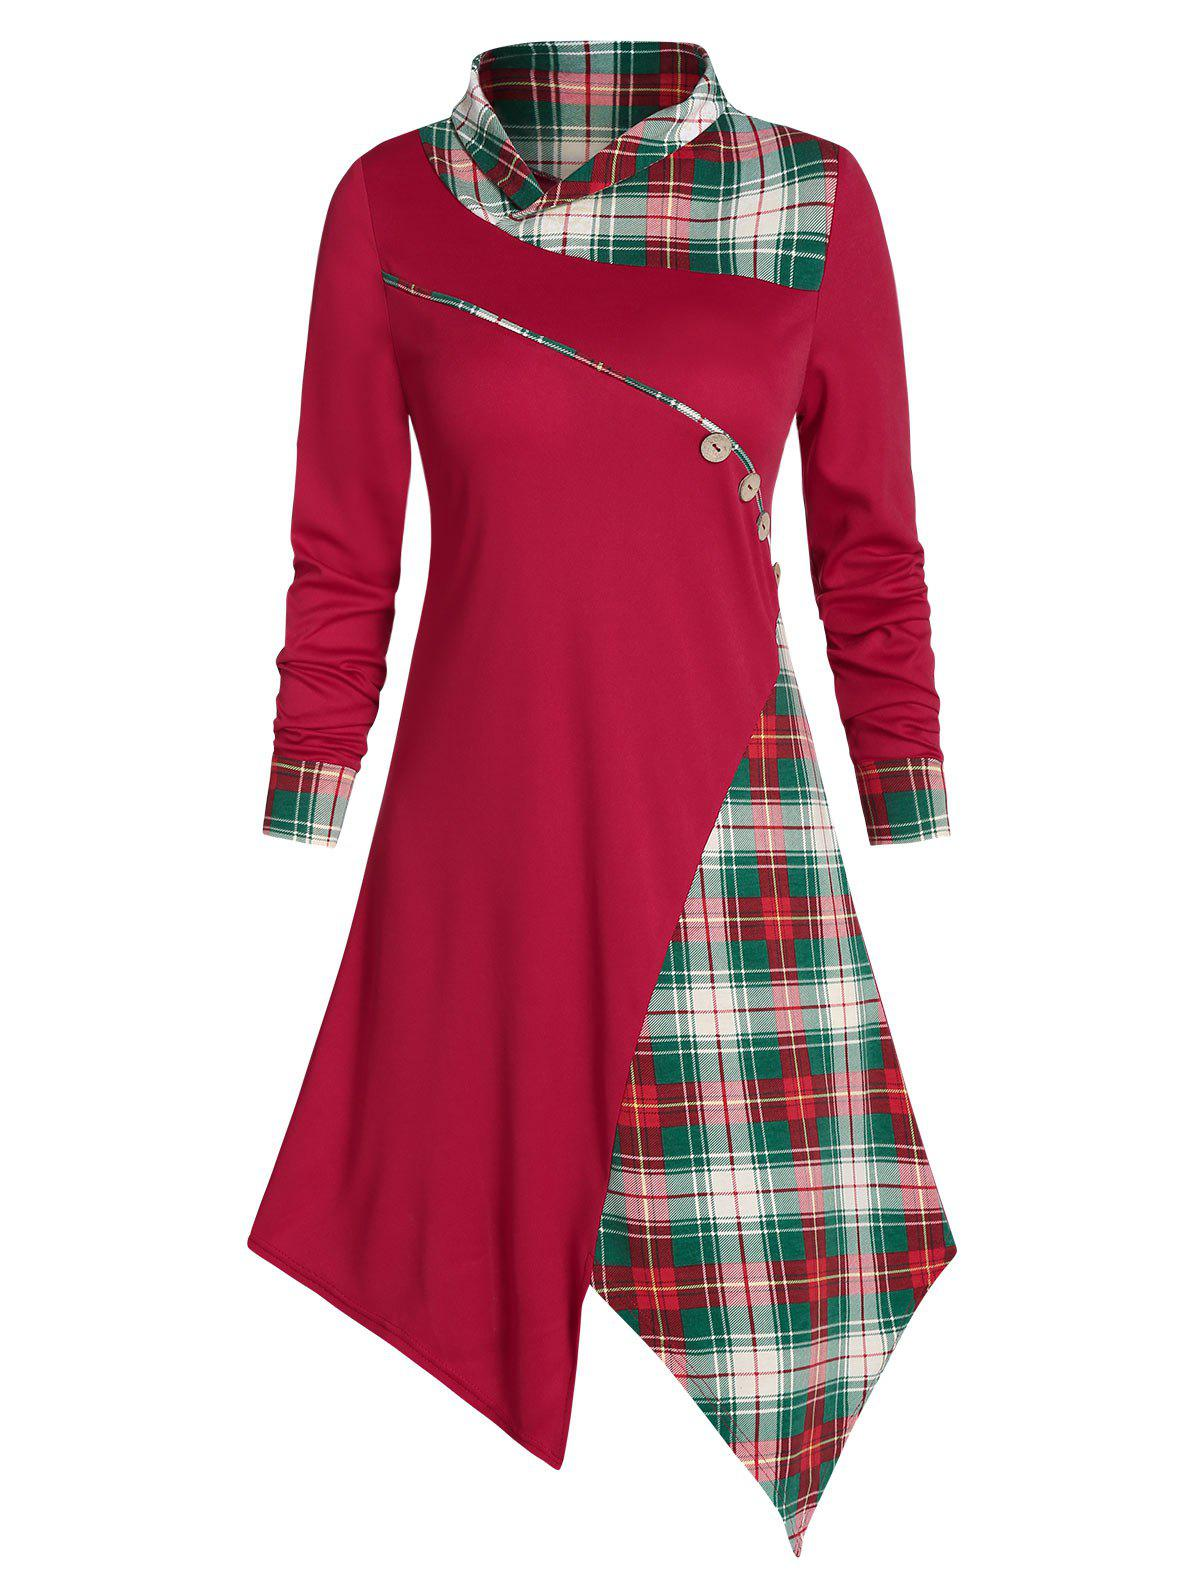 Plaid Buttons Asymmetric Midi Dress - RED WINE XL